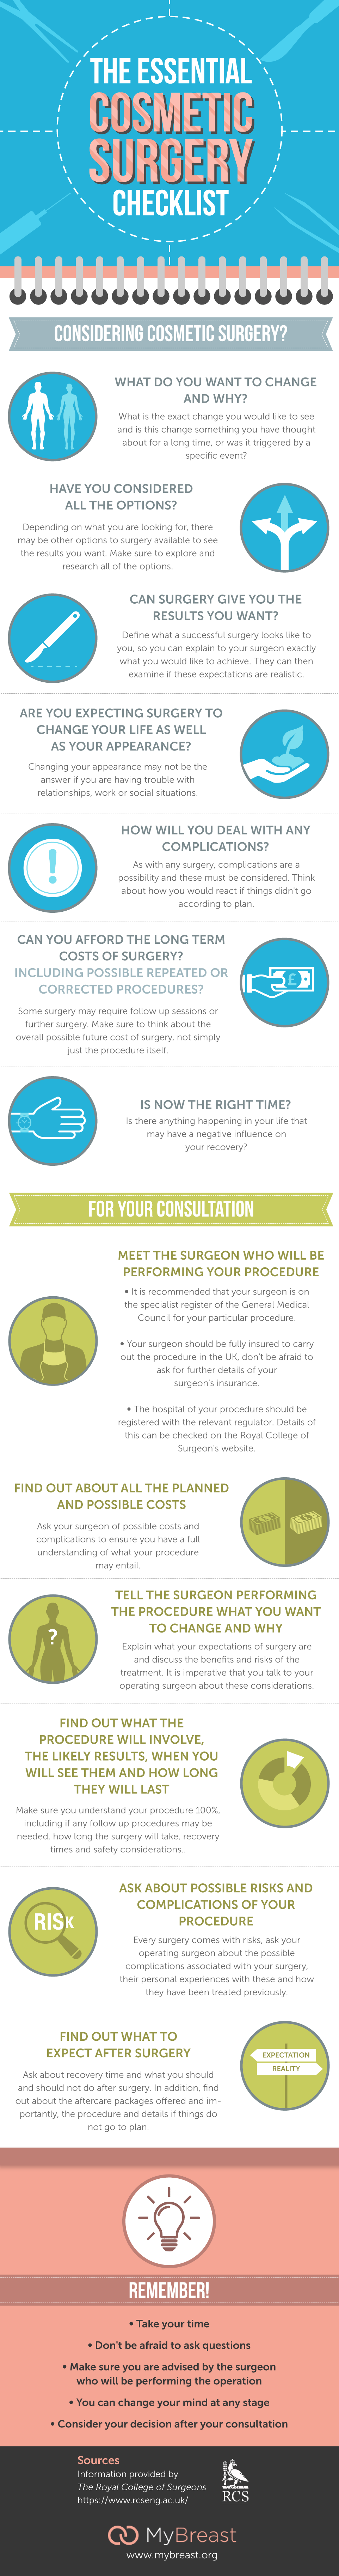 The Essential Cosmetic Surgery Checklist #infographic #Health #Surgery